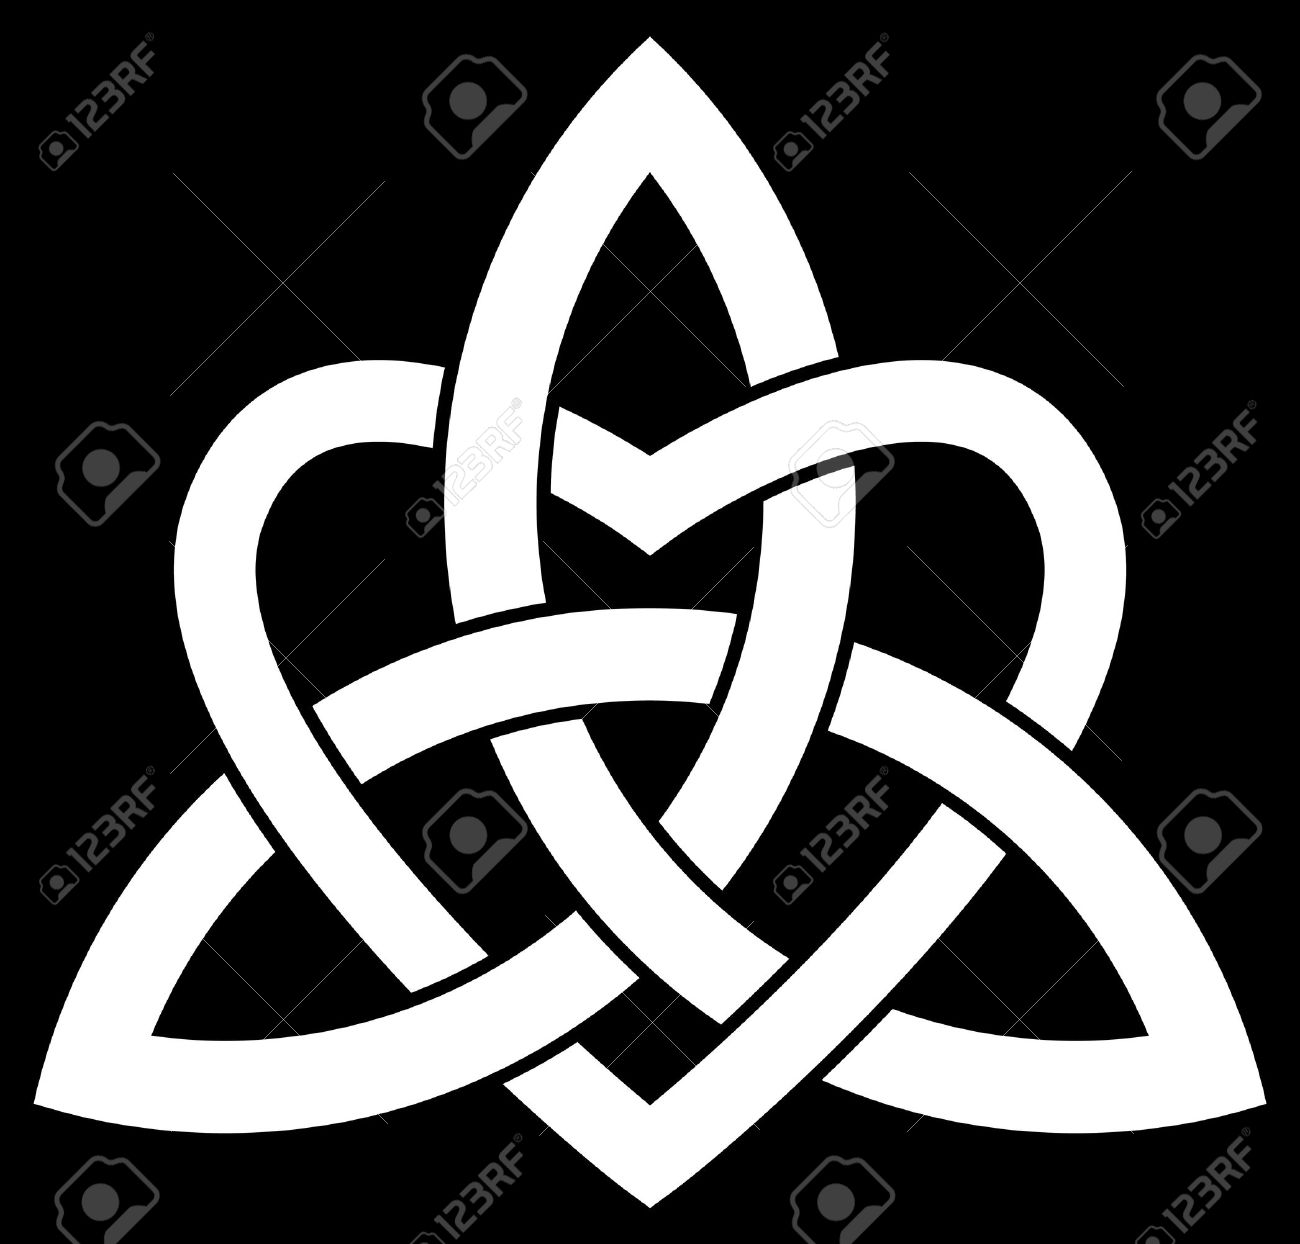 5568 celtic knot stock vector illustration and royalty free celtic celtic trinity knot triquetra interlaced with a heart biocorpaavc Gallery